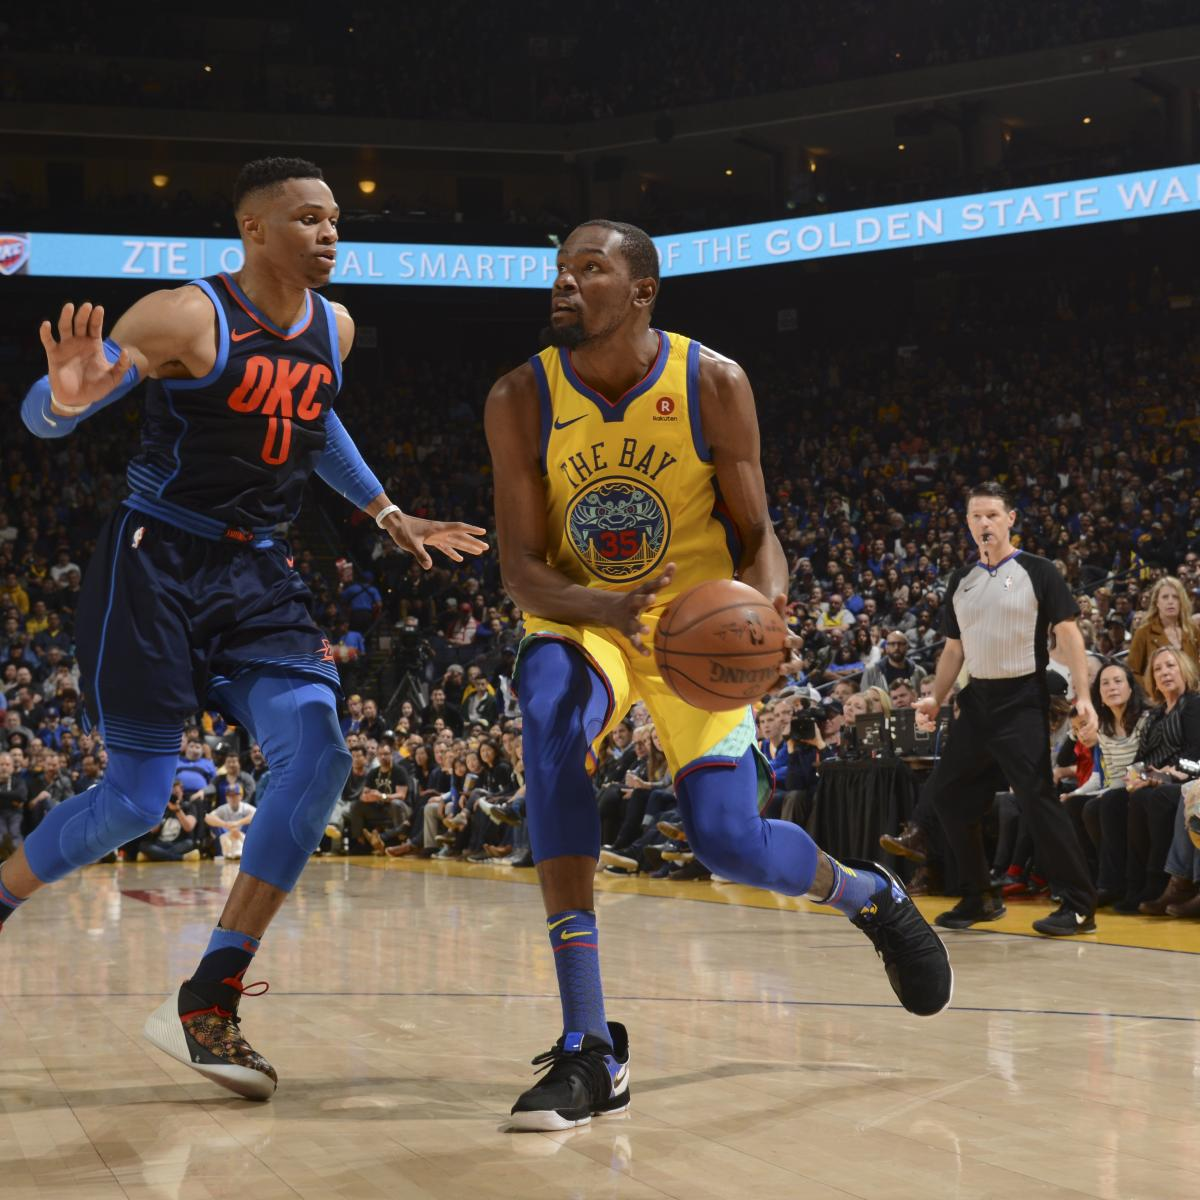 Warriors Come Out To Play Bleacher Report: Russell Westbrook Struggles In Thunder's Lopsided Loss To